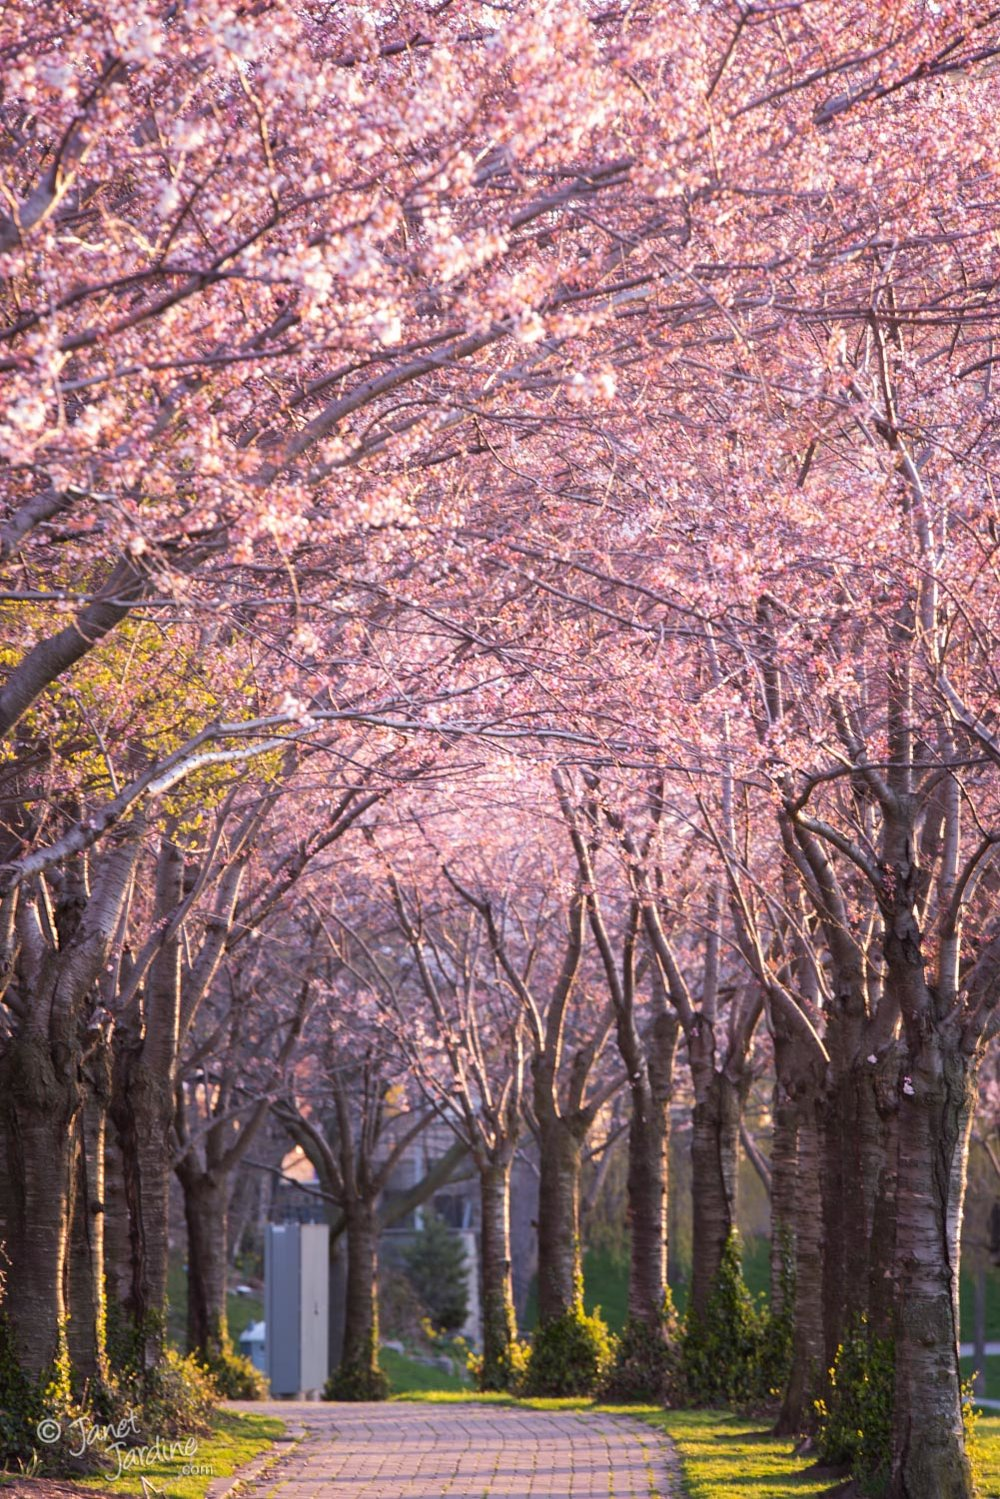 Spencer-Smilth-Park-Cherry-Trees_Photo_copyright_Janet_Jardine_SquareSpace.jpg